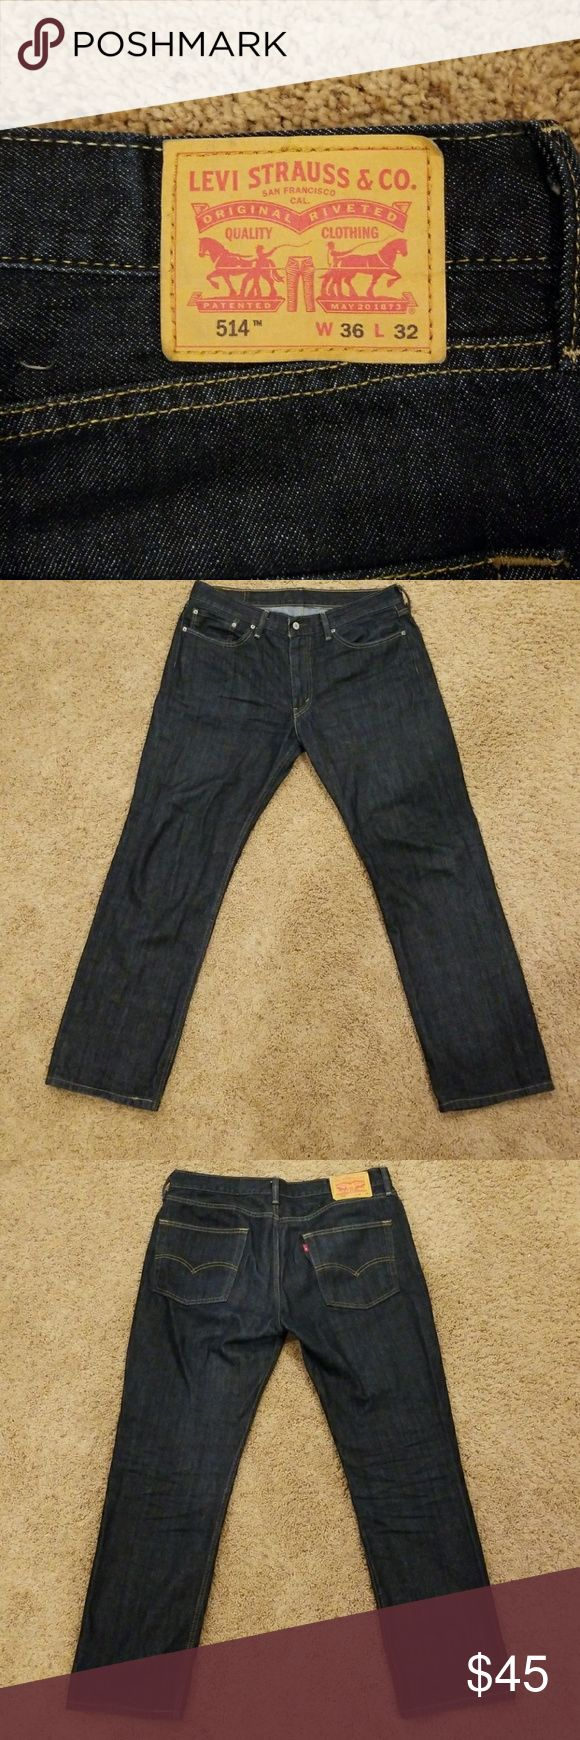 Levi's Jeans 514 Perfect condition, like new Levi's 514 Jeans. These have very minimal wear.  36 x 32 Levi's Jeans Straight